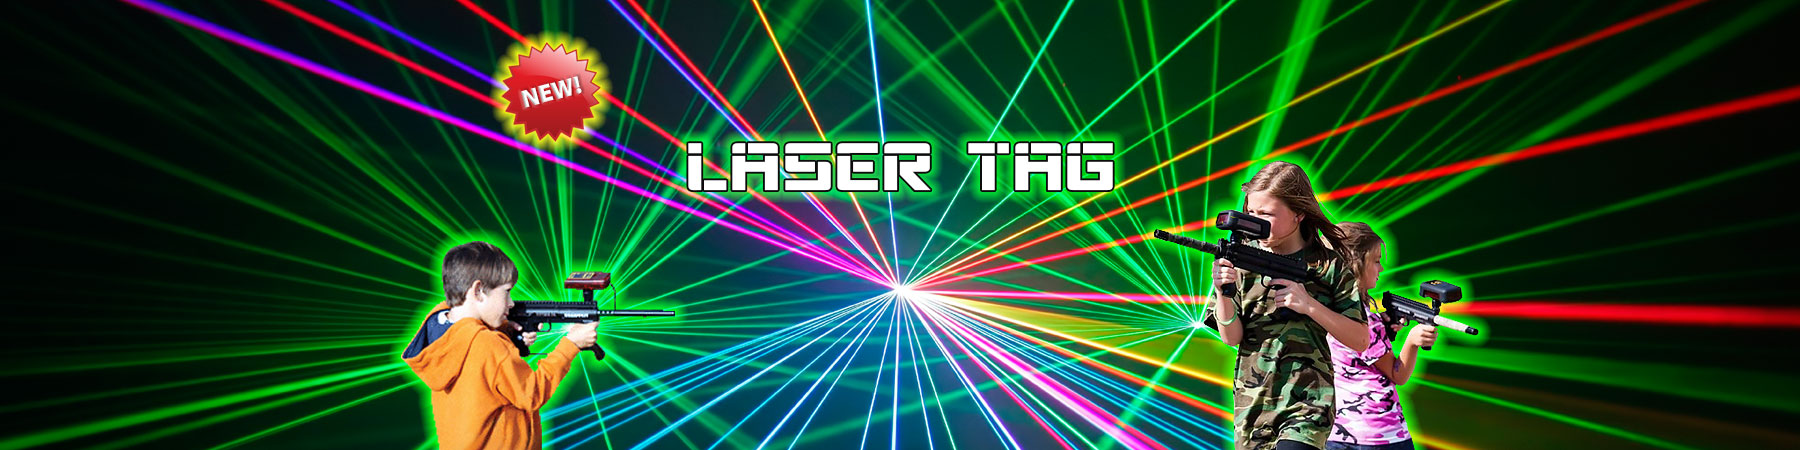 home-slide-laser-tag